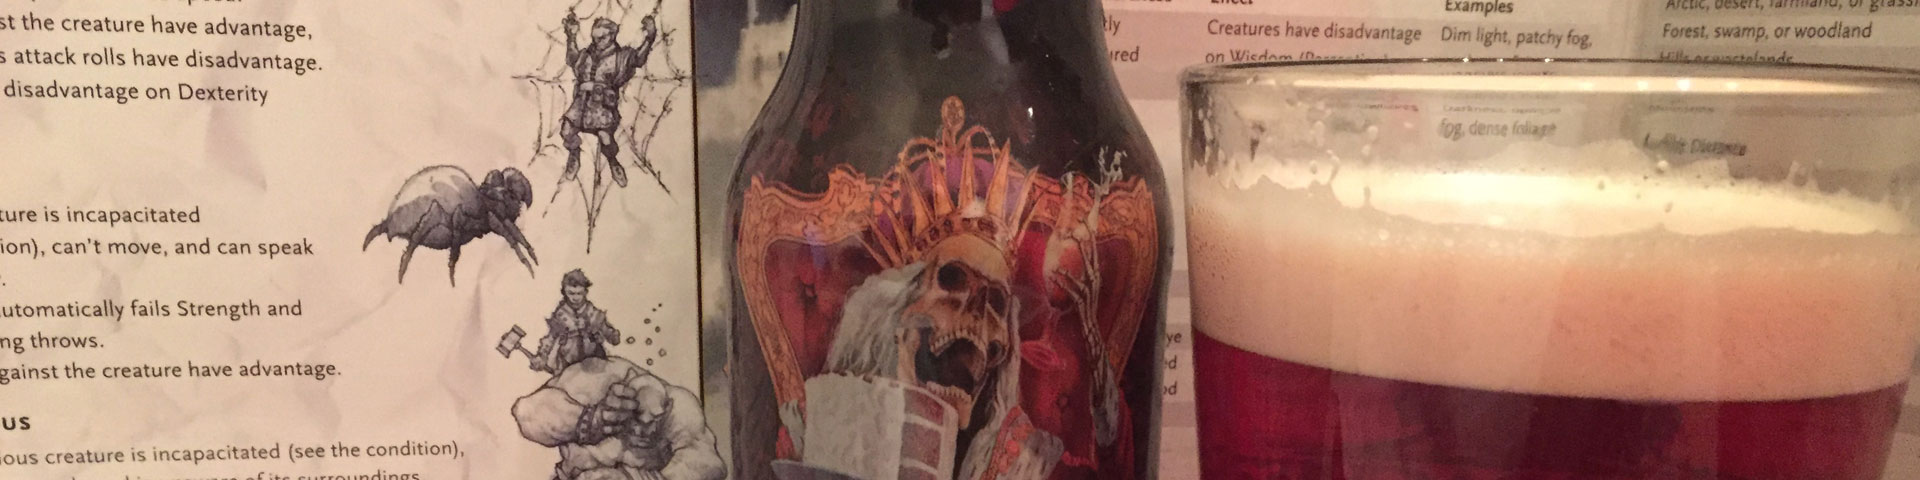 A close-up of a beer with an undead king sitting on a throne, with a glass of reddish beer near by in a pint glass.